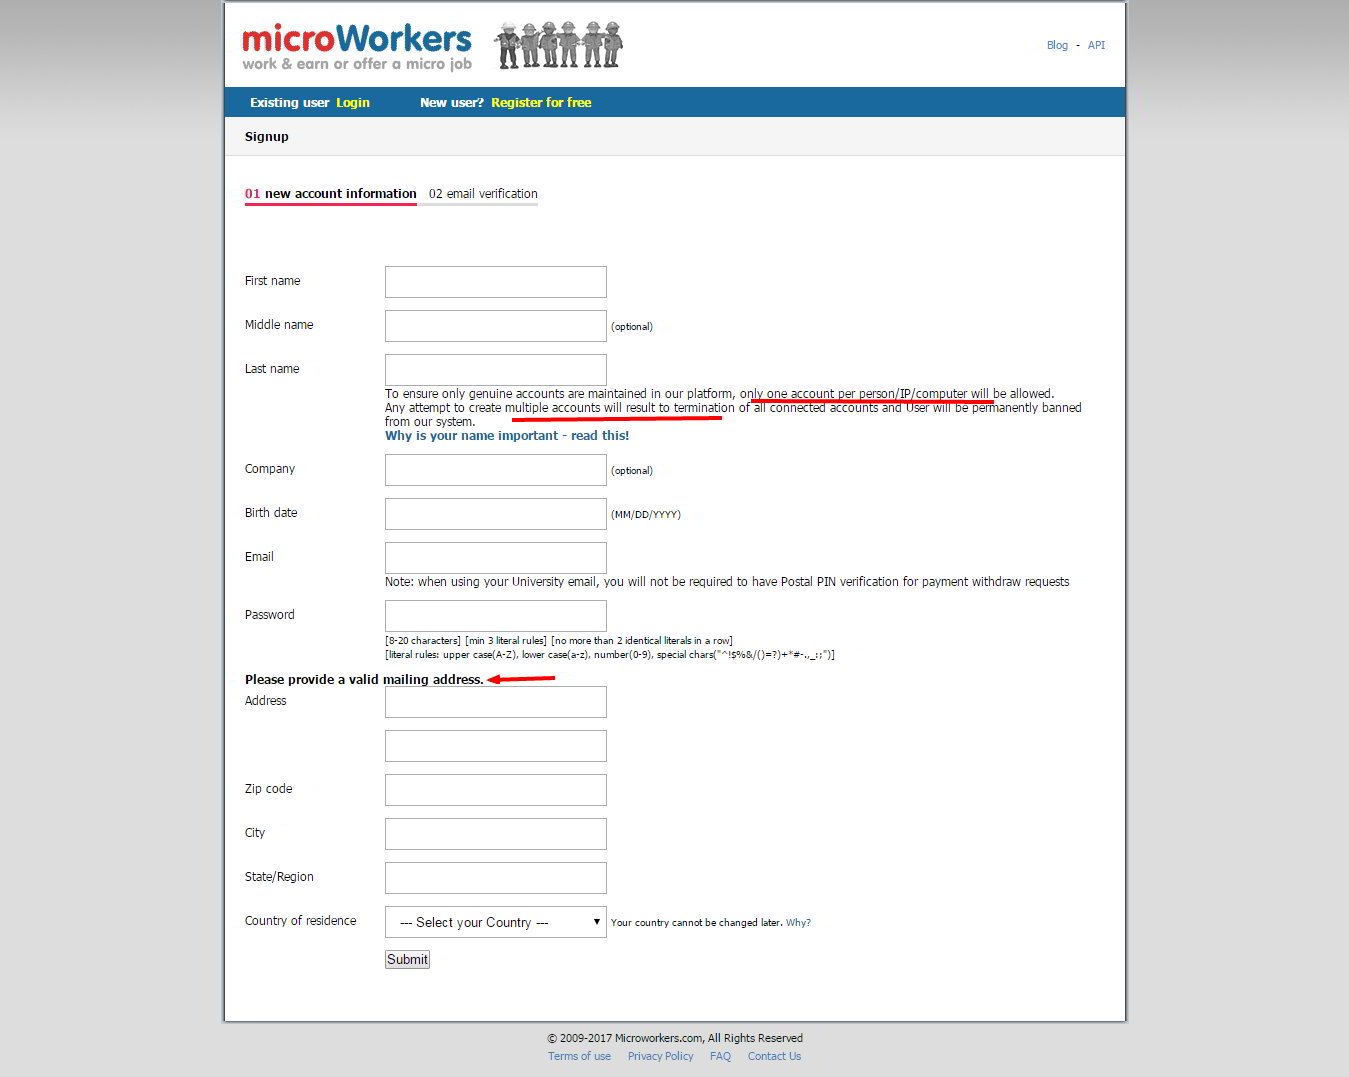 Microworkers work earn or offer a micro job